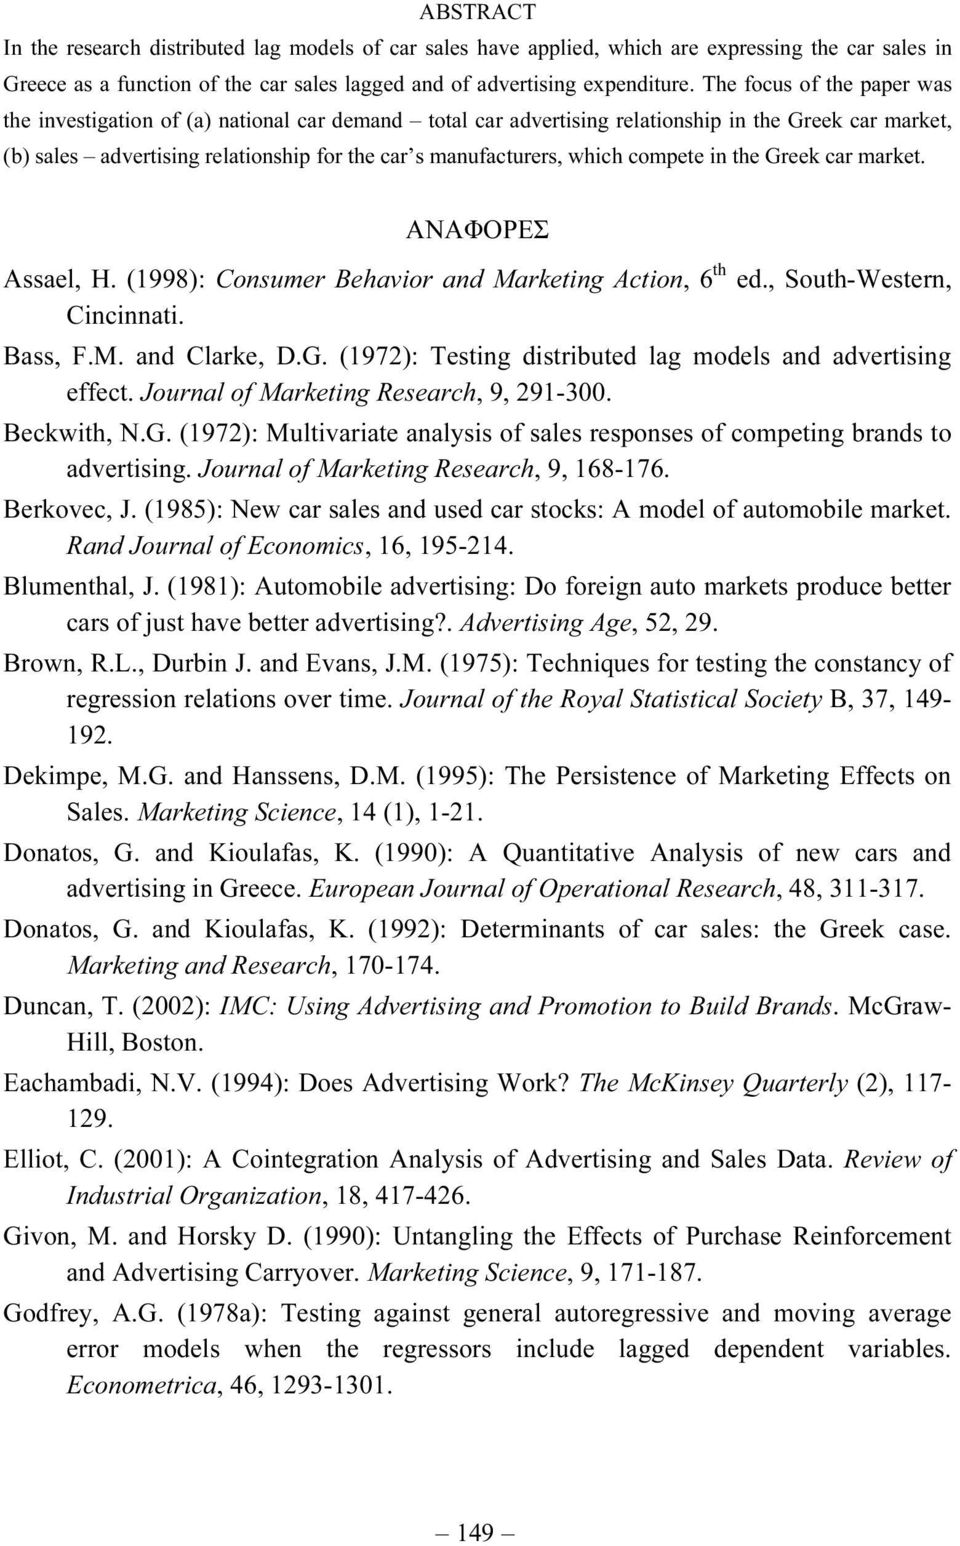 which compete in the Greek car market. ΑΝΑΦΟΡΕΣ Assael, H. (1998): Consumer Behavior and Marketing Action, 6 th ed., South-Western, Cincinnati. Bass, F.M. and Clarke, D.G. (1972): Testing distributed lag models and advertising effect.